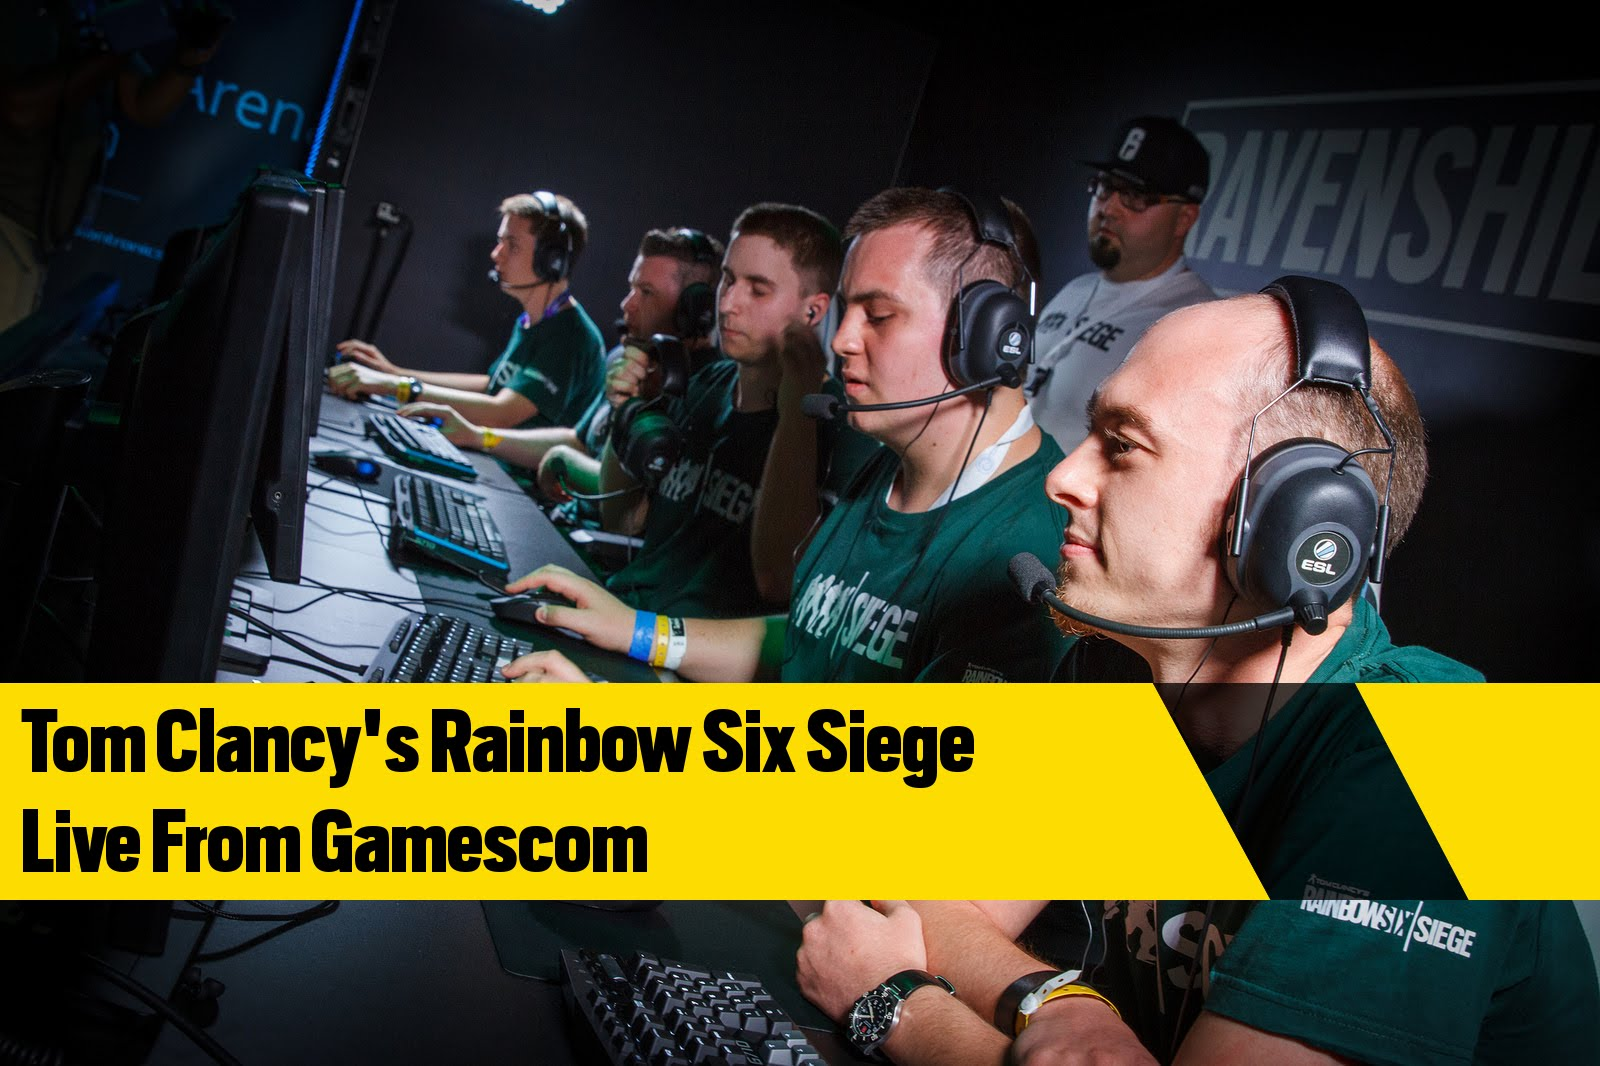 Tom Clancy's Rainbow Six Siege - Live from gamescom